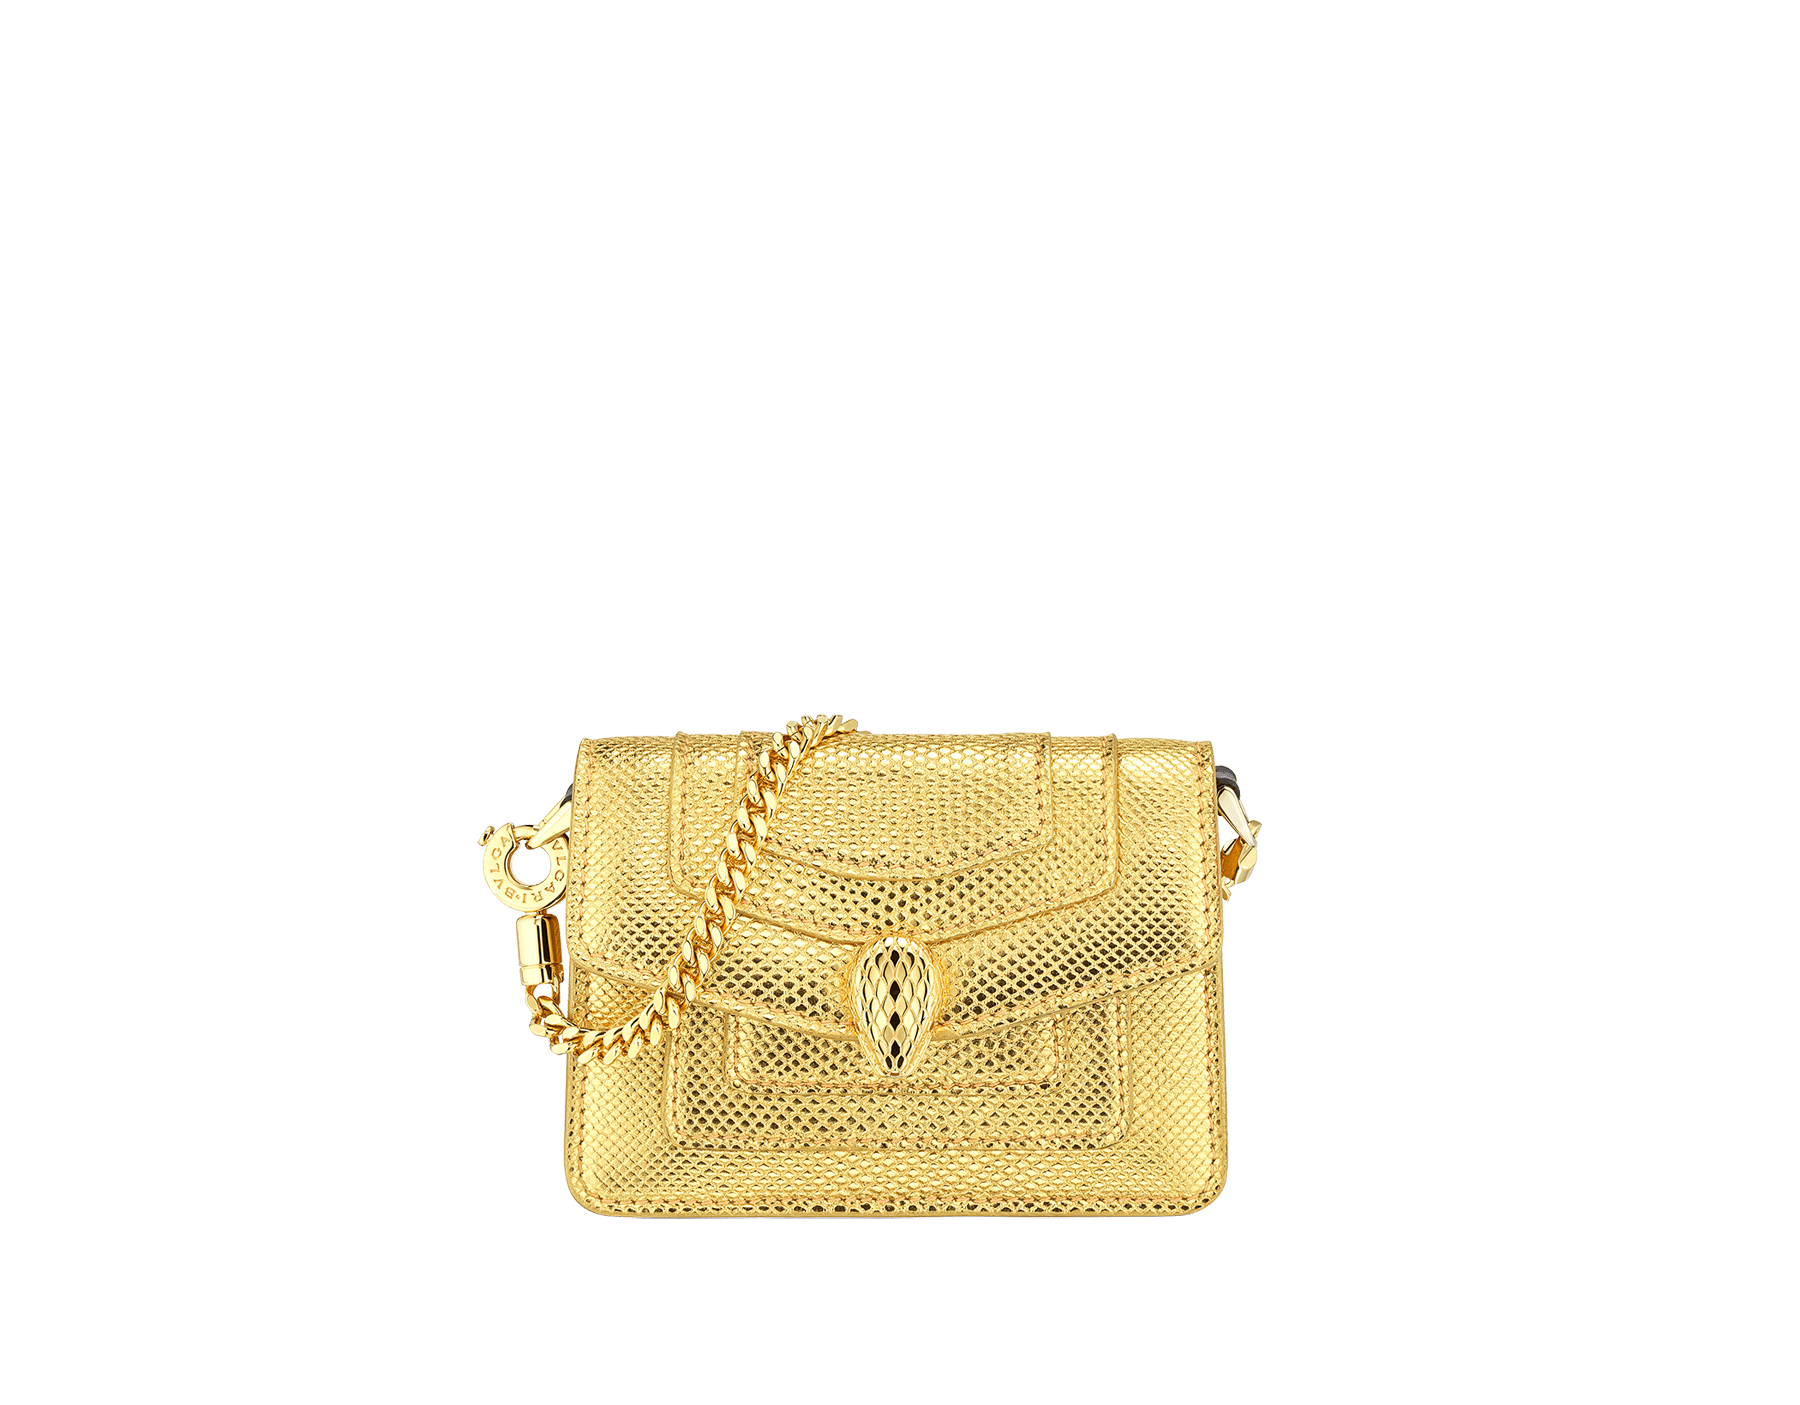 """Serpenti Forever"" mini bag in ""Molten"" gold karung skin and black calfskin, offering a touch of radiance for the Winter Holidays. New Serpenti head closure in gold-plated brass, complete with ruby-red enamel eyes. 290631 image 1"